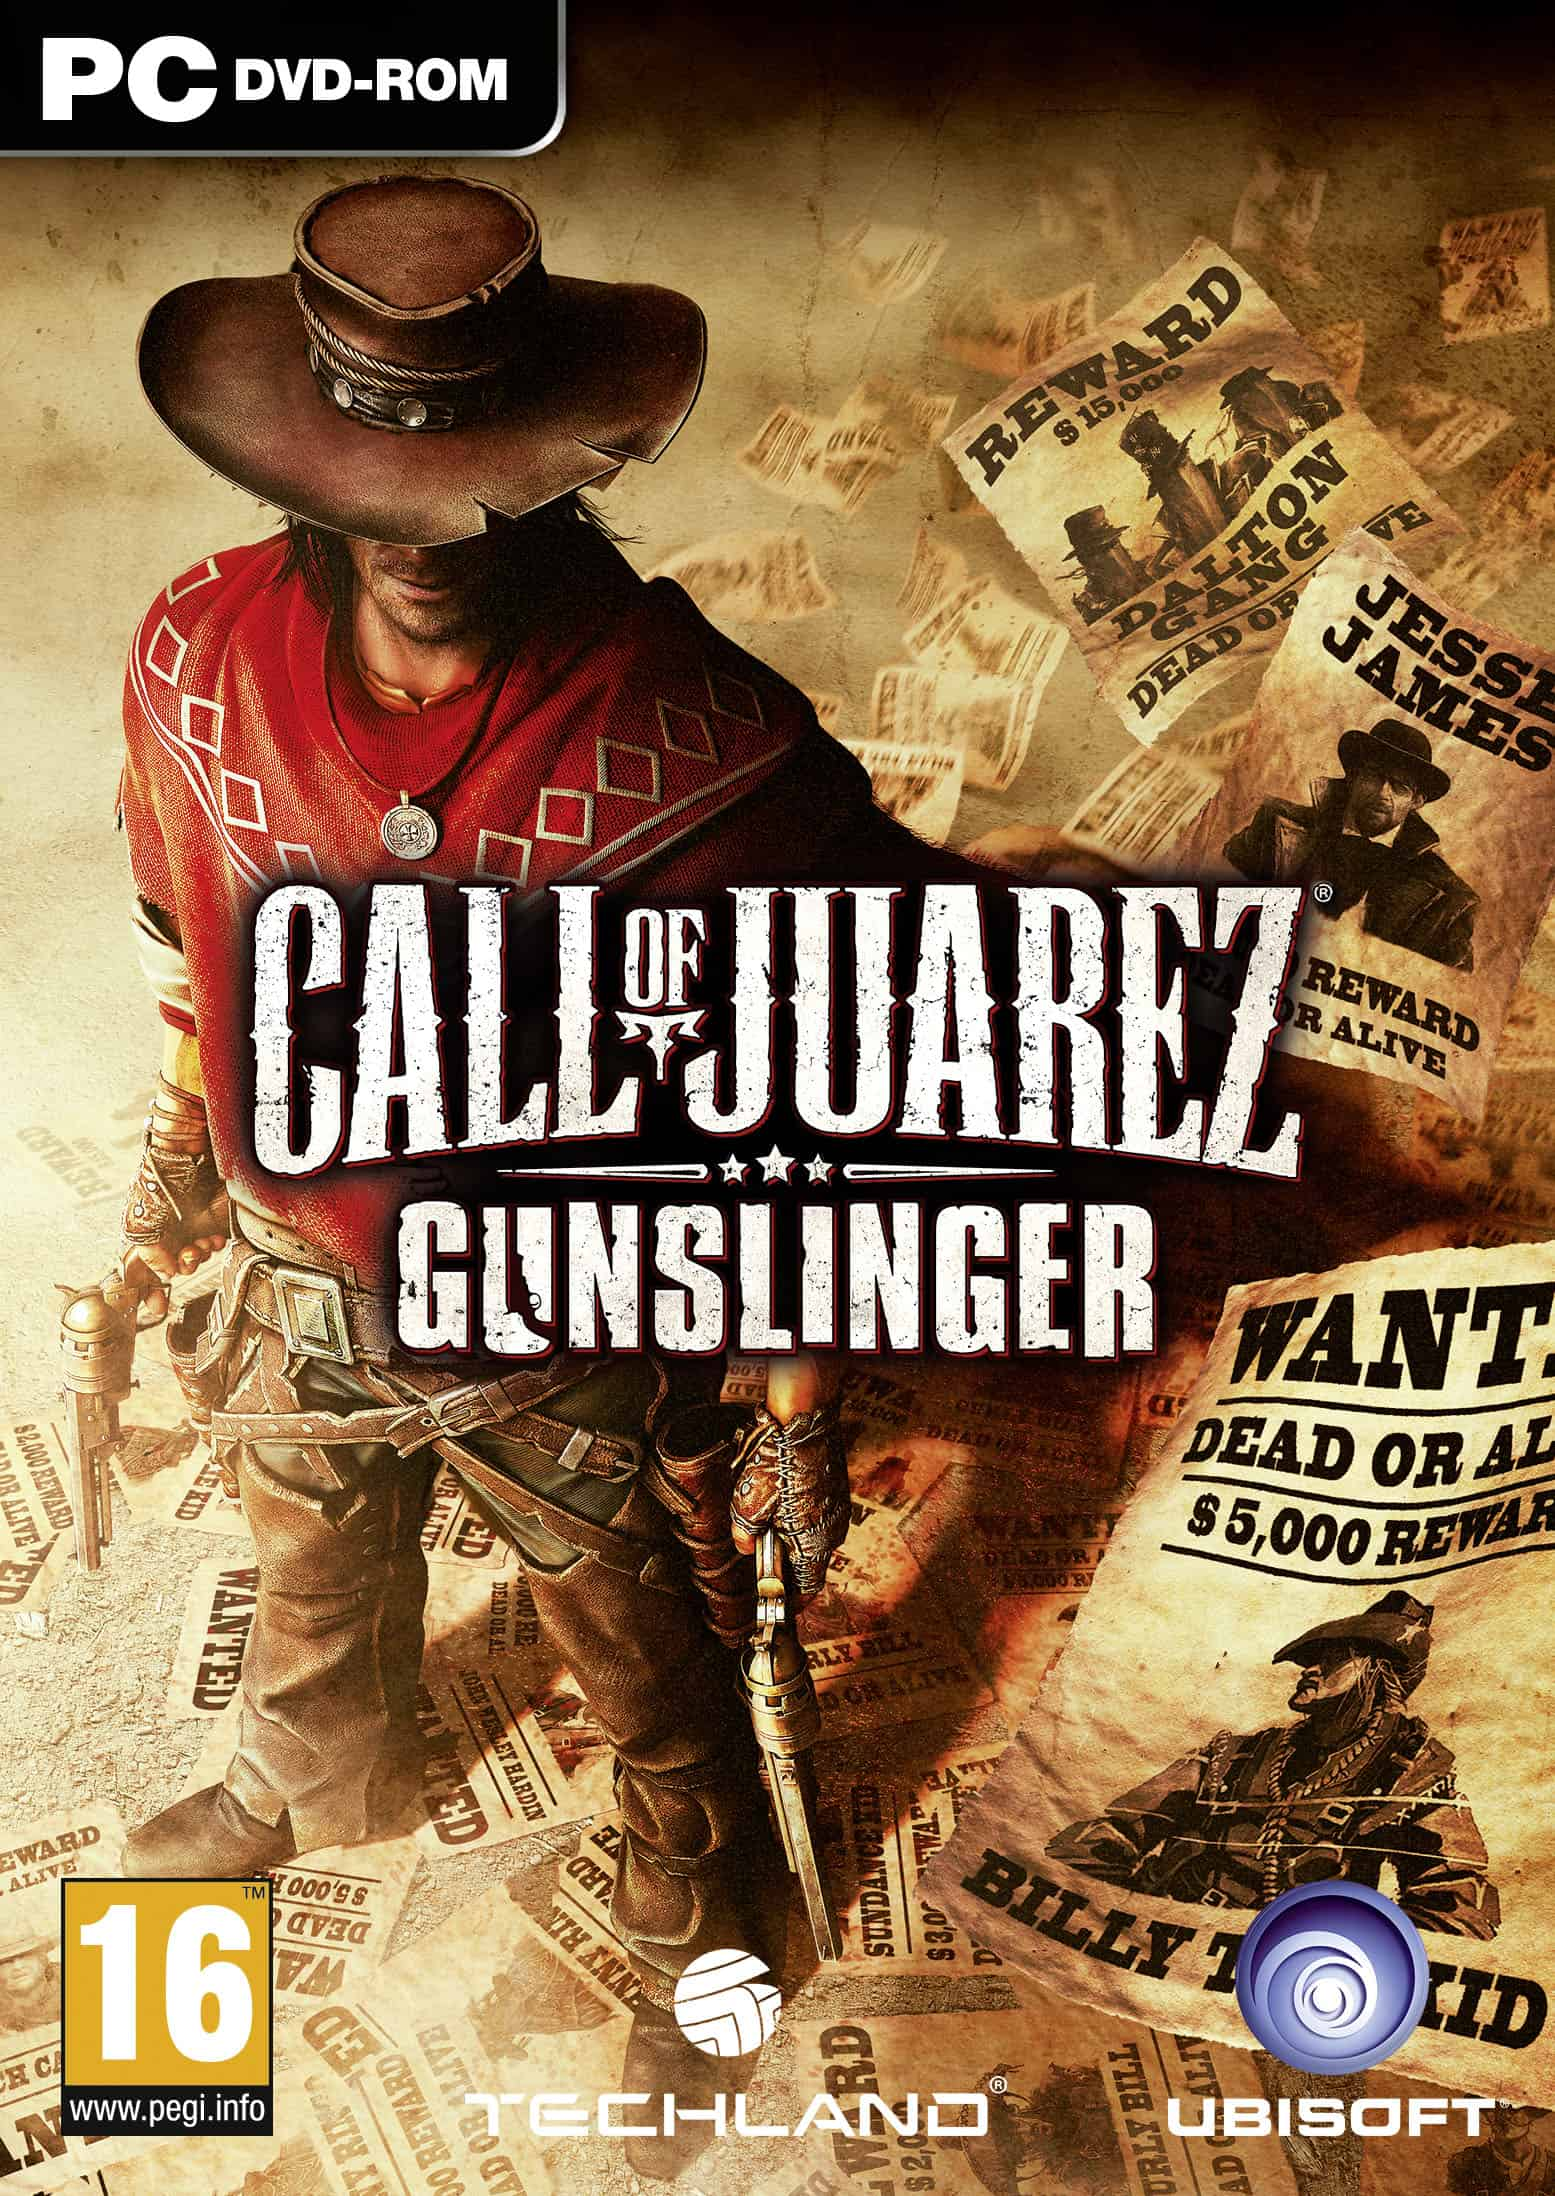 Buy call of juarez®: gunslinger and download.